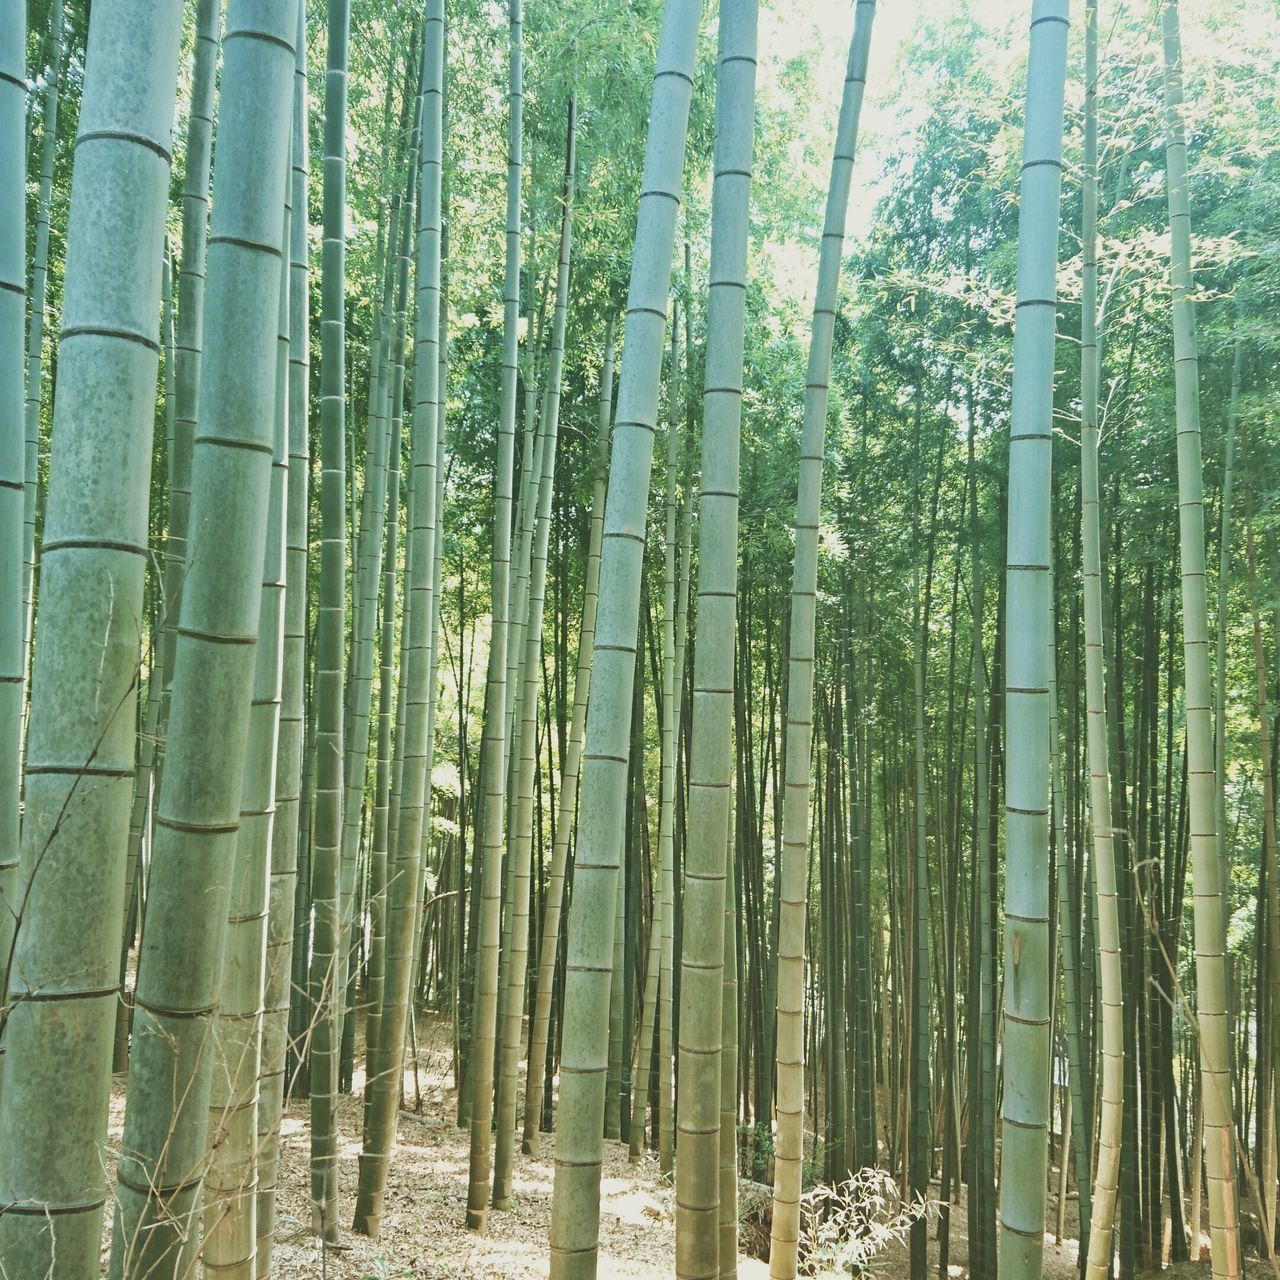 Kyoto Kyoto, Japan Nature Green Color Growth Bamboo - Plant Tree Bamboo Grove Beauty In Nature No People Backgrounds Outdoors Day Plant Scenics Freshness Bamboo Forest Kyoto City Nature Nature_collection